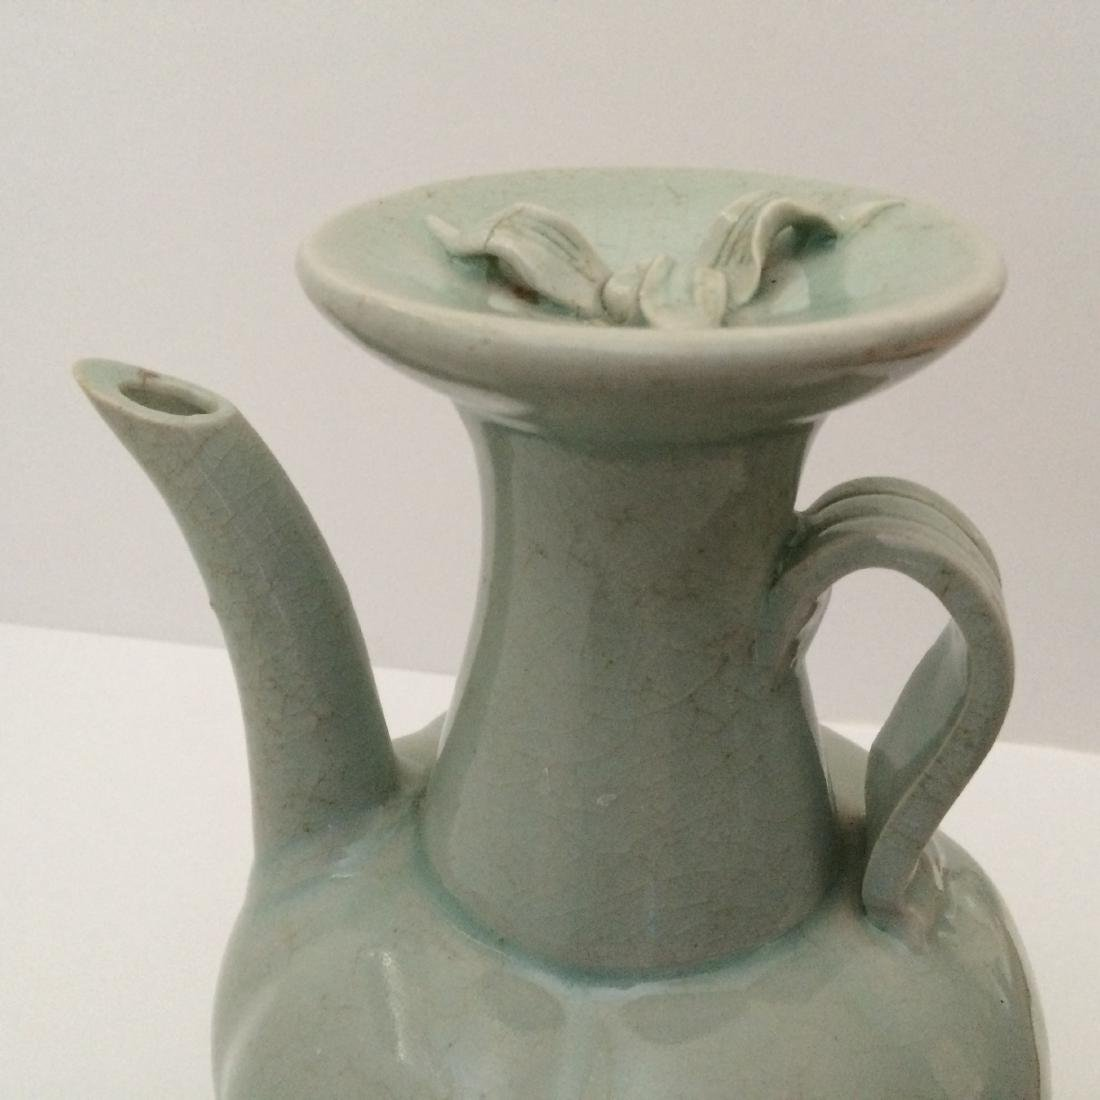 Song Dynasty Tea Pot with Handle - 3